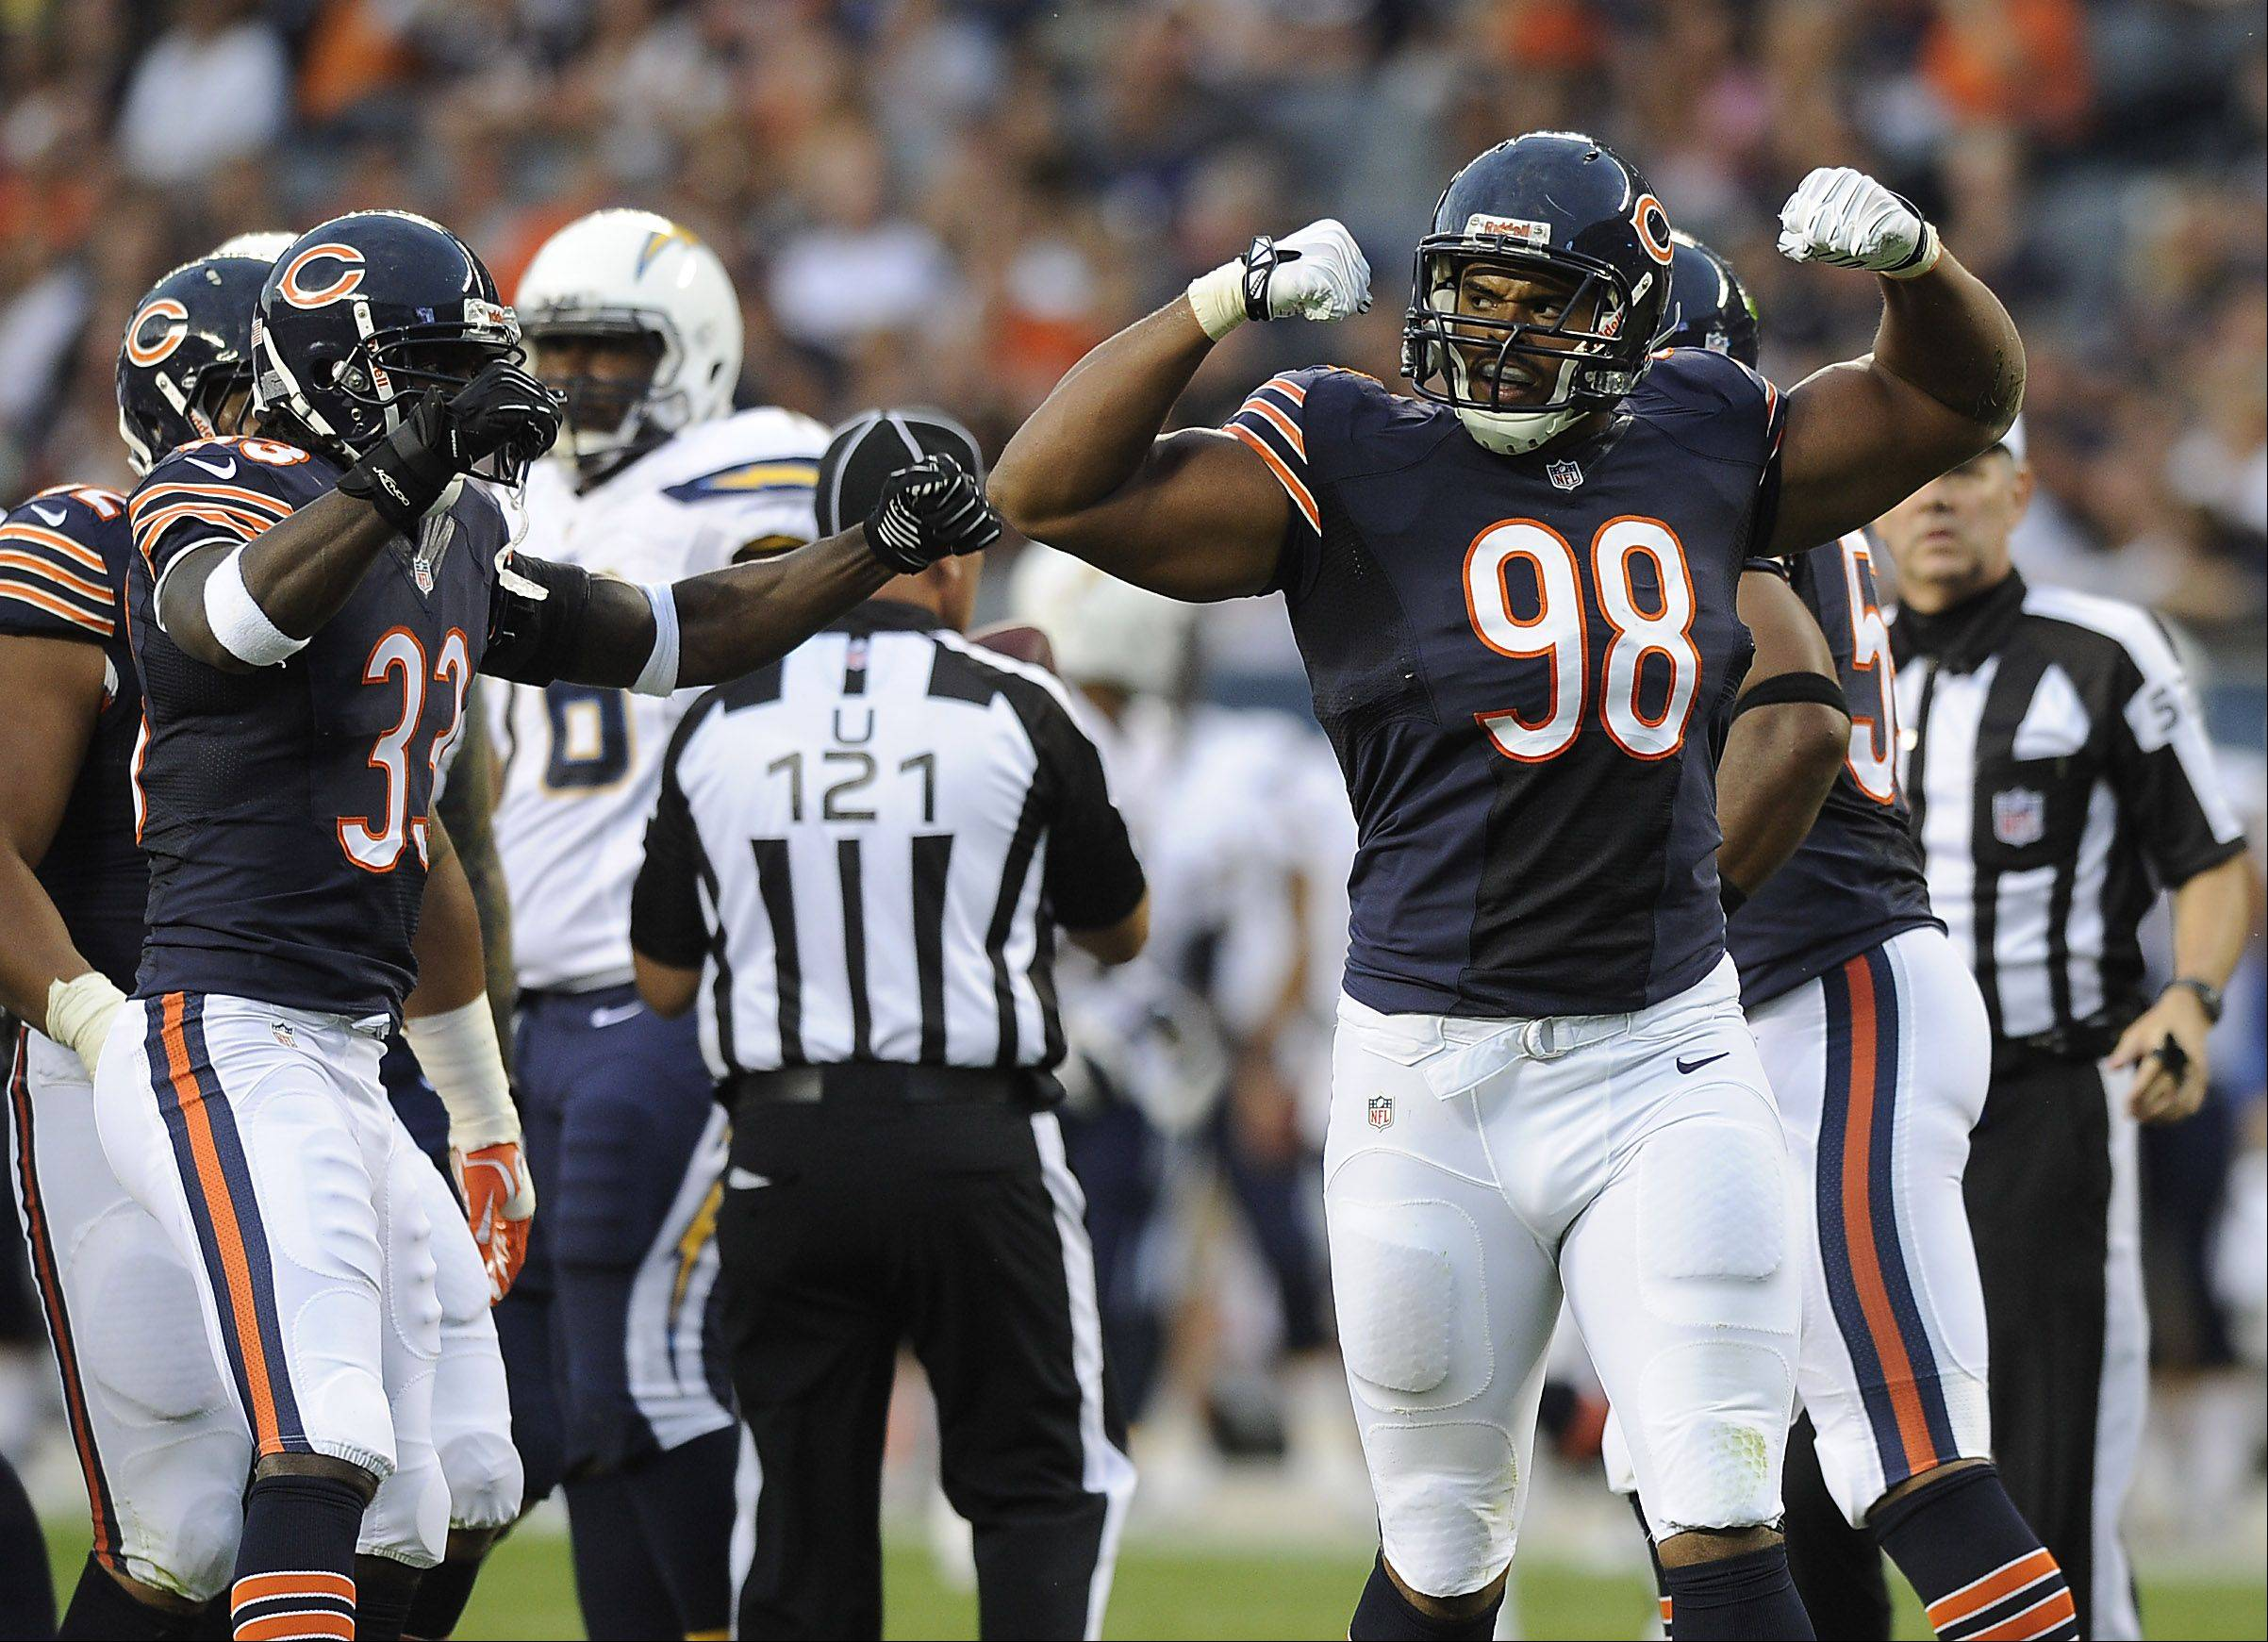 Chicago Bear Corey Wootton reacts after sacking Chargers' quarterback Phillip Rivers in the first half.